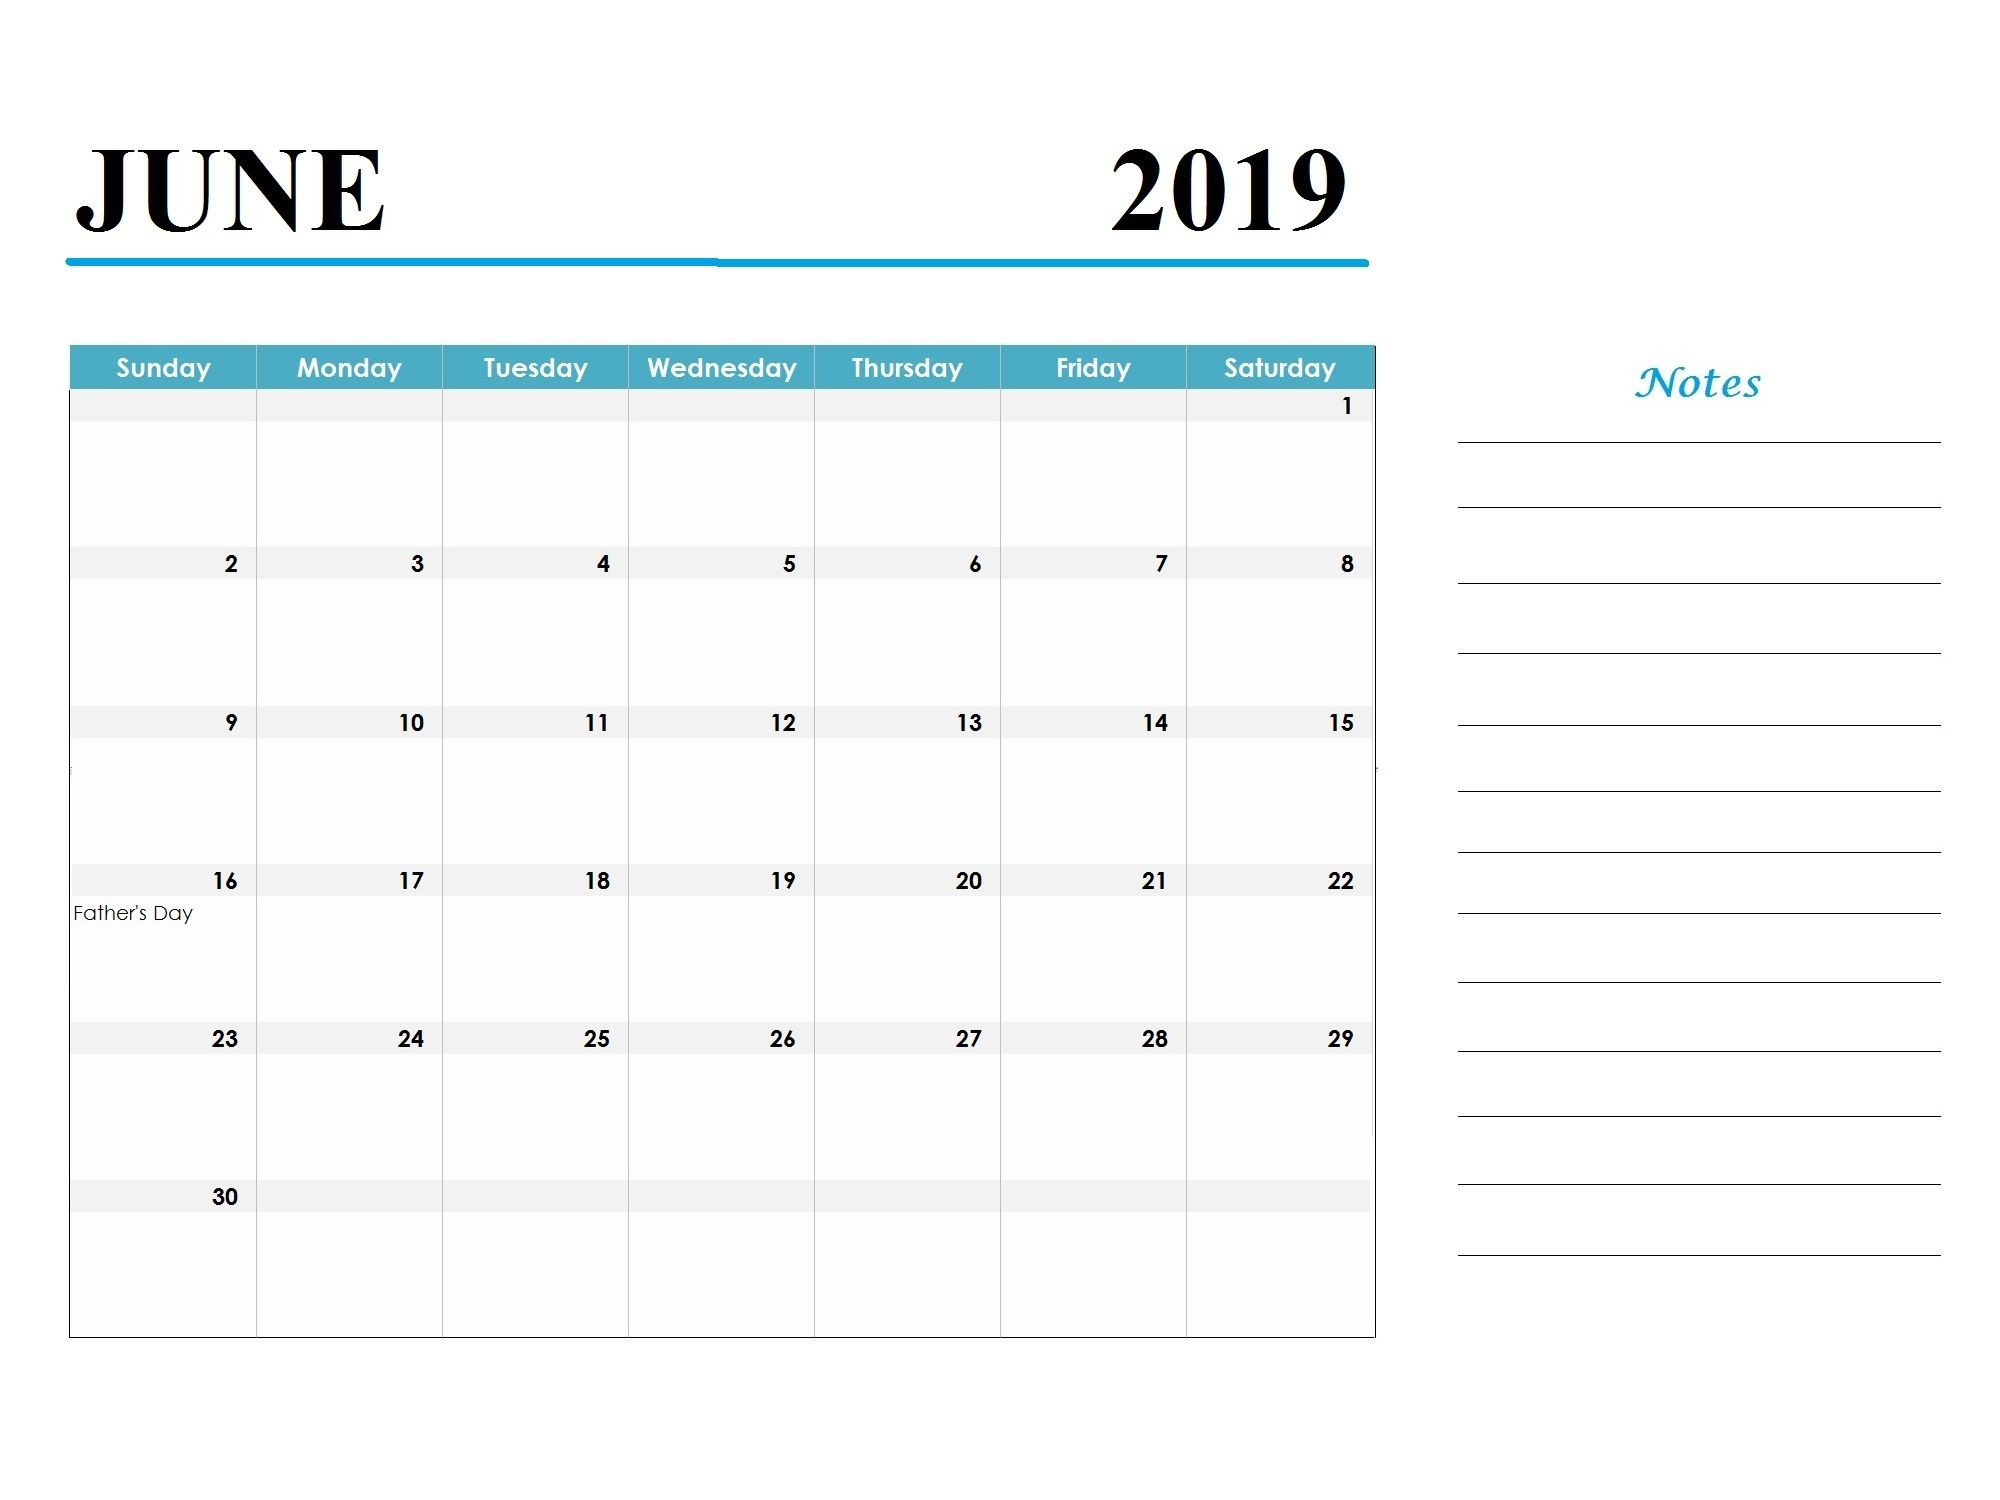 Monthly Calendar 2019 Excel Template Más Recientemente Liberado June 2019 Holidays Calendar Template Of Monthly Calendar 2019 Excel Template Más Actual Training Calendar Template Degree Planning Worksheet Unique 2019